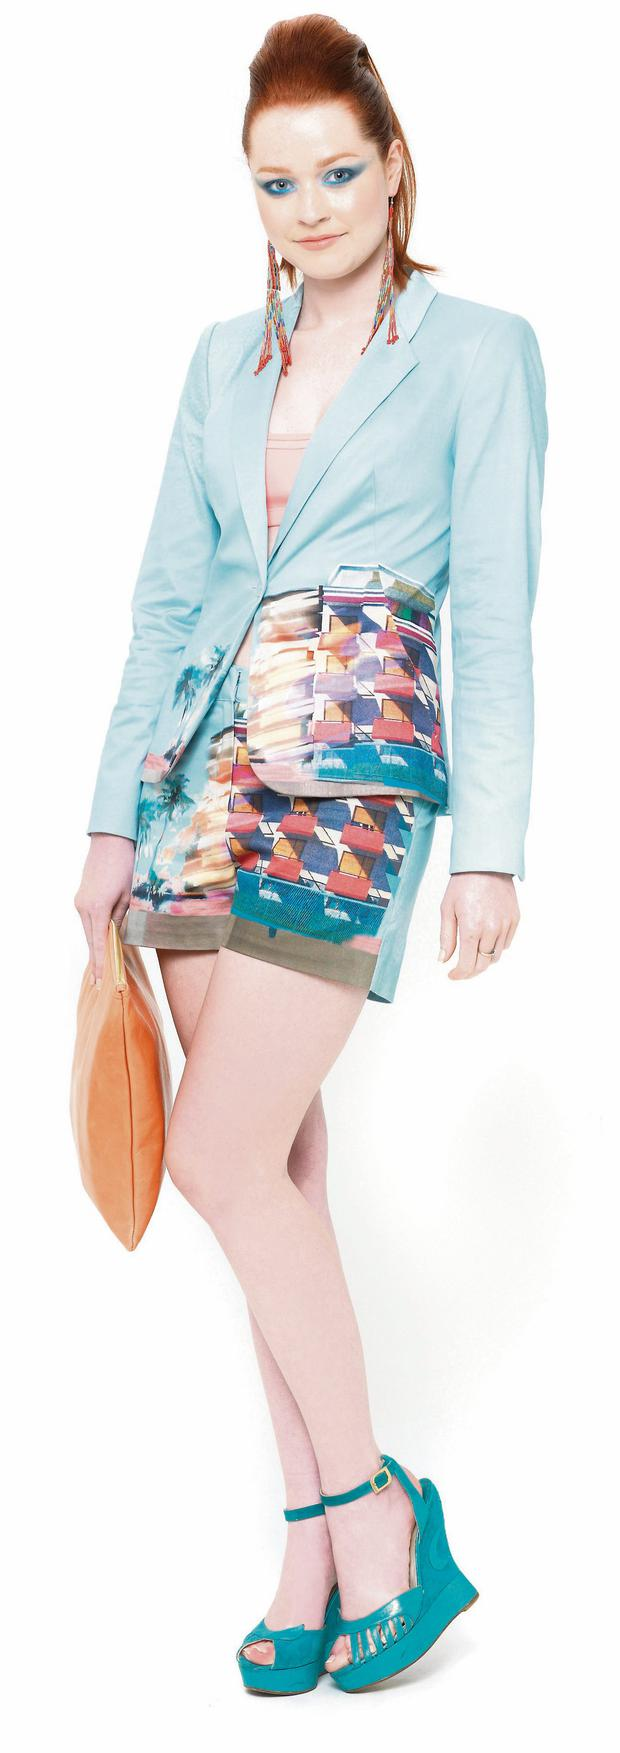 Lauren wears beaded tribal earrings, €18, River Island; 'Miami' print blazer, €250, and shorts, €110, both Ted Baker, Grafton Street, and Brown Thomas; chiffon cami, €30, and peach leather clutch, €56, both American Apparel, and Terry de Havilland wedges, reduced to €250 to buy, Couture For Hire, Duke Street, D2